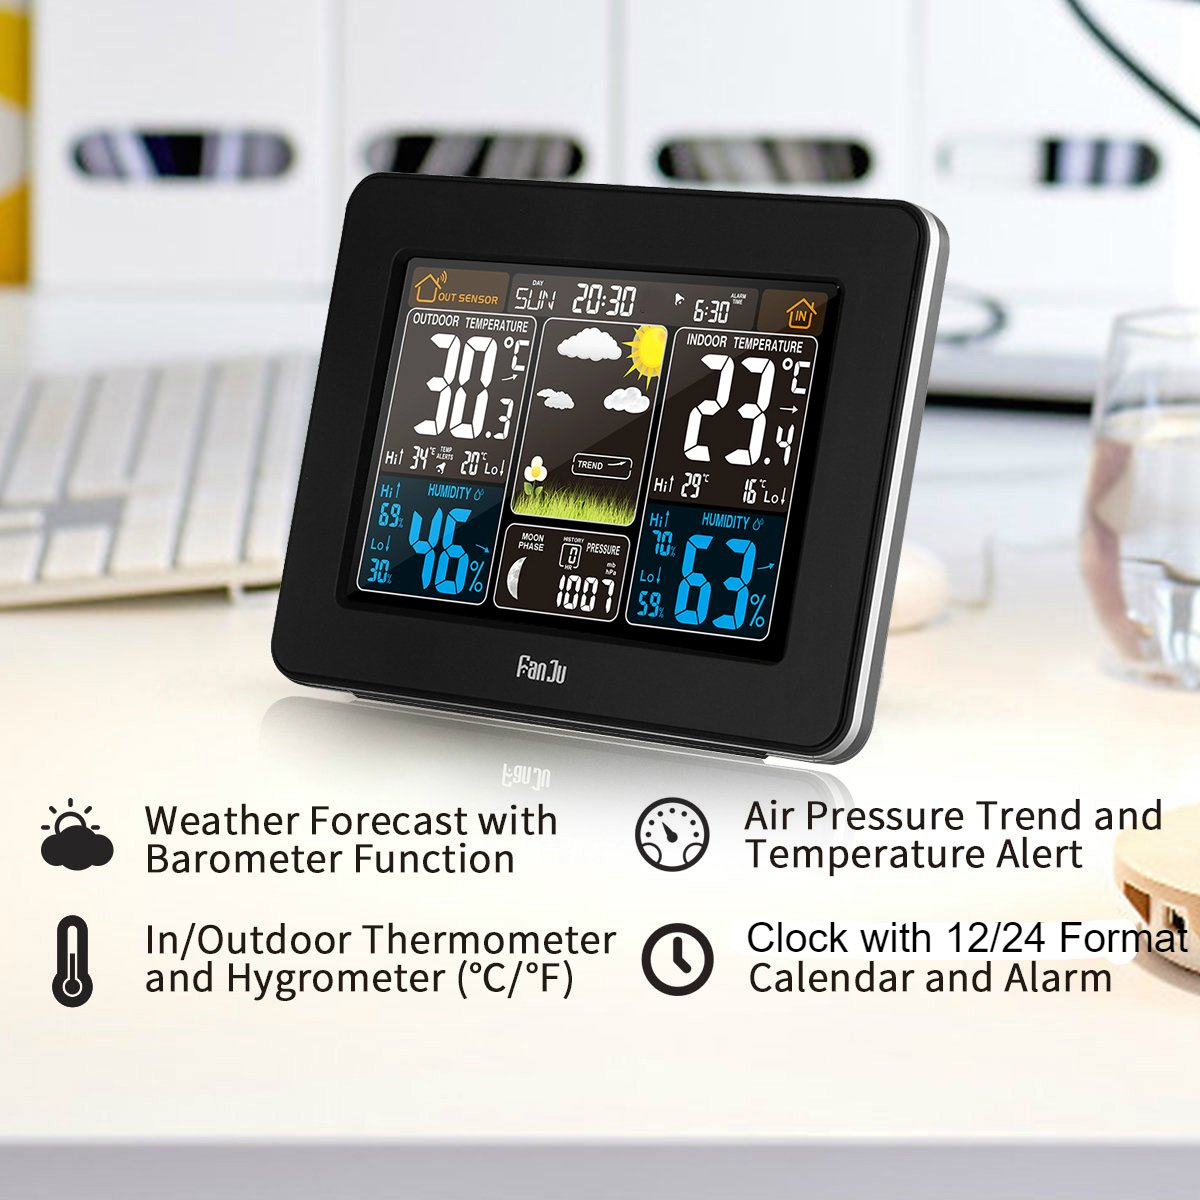 FanJu FJ3365B Digital Color Forecast Weather Station with Alert and Temperature/Humidity/Barometer/Alarm/Moon phase/Weather Clock with Outdoor Sensor by FanJu (Image #2)